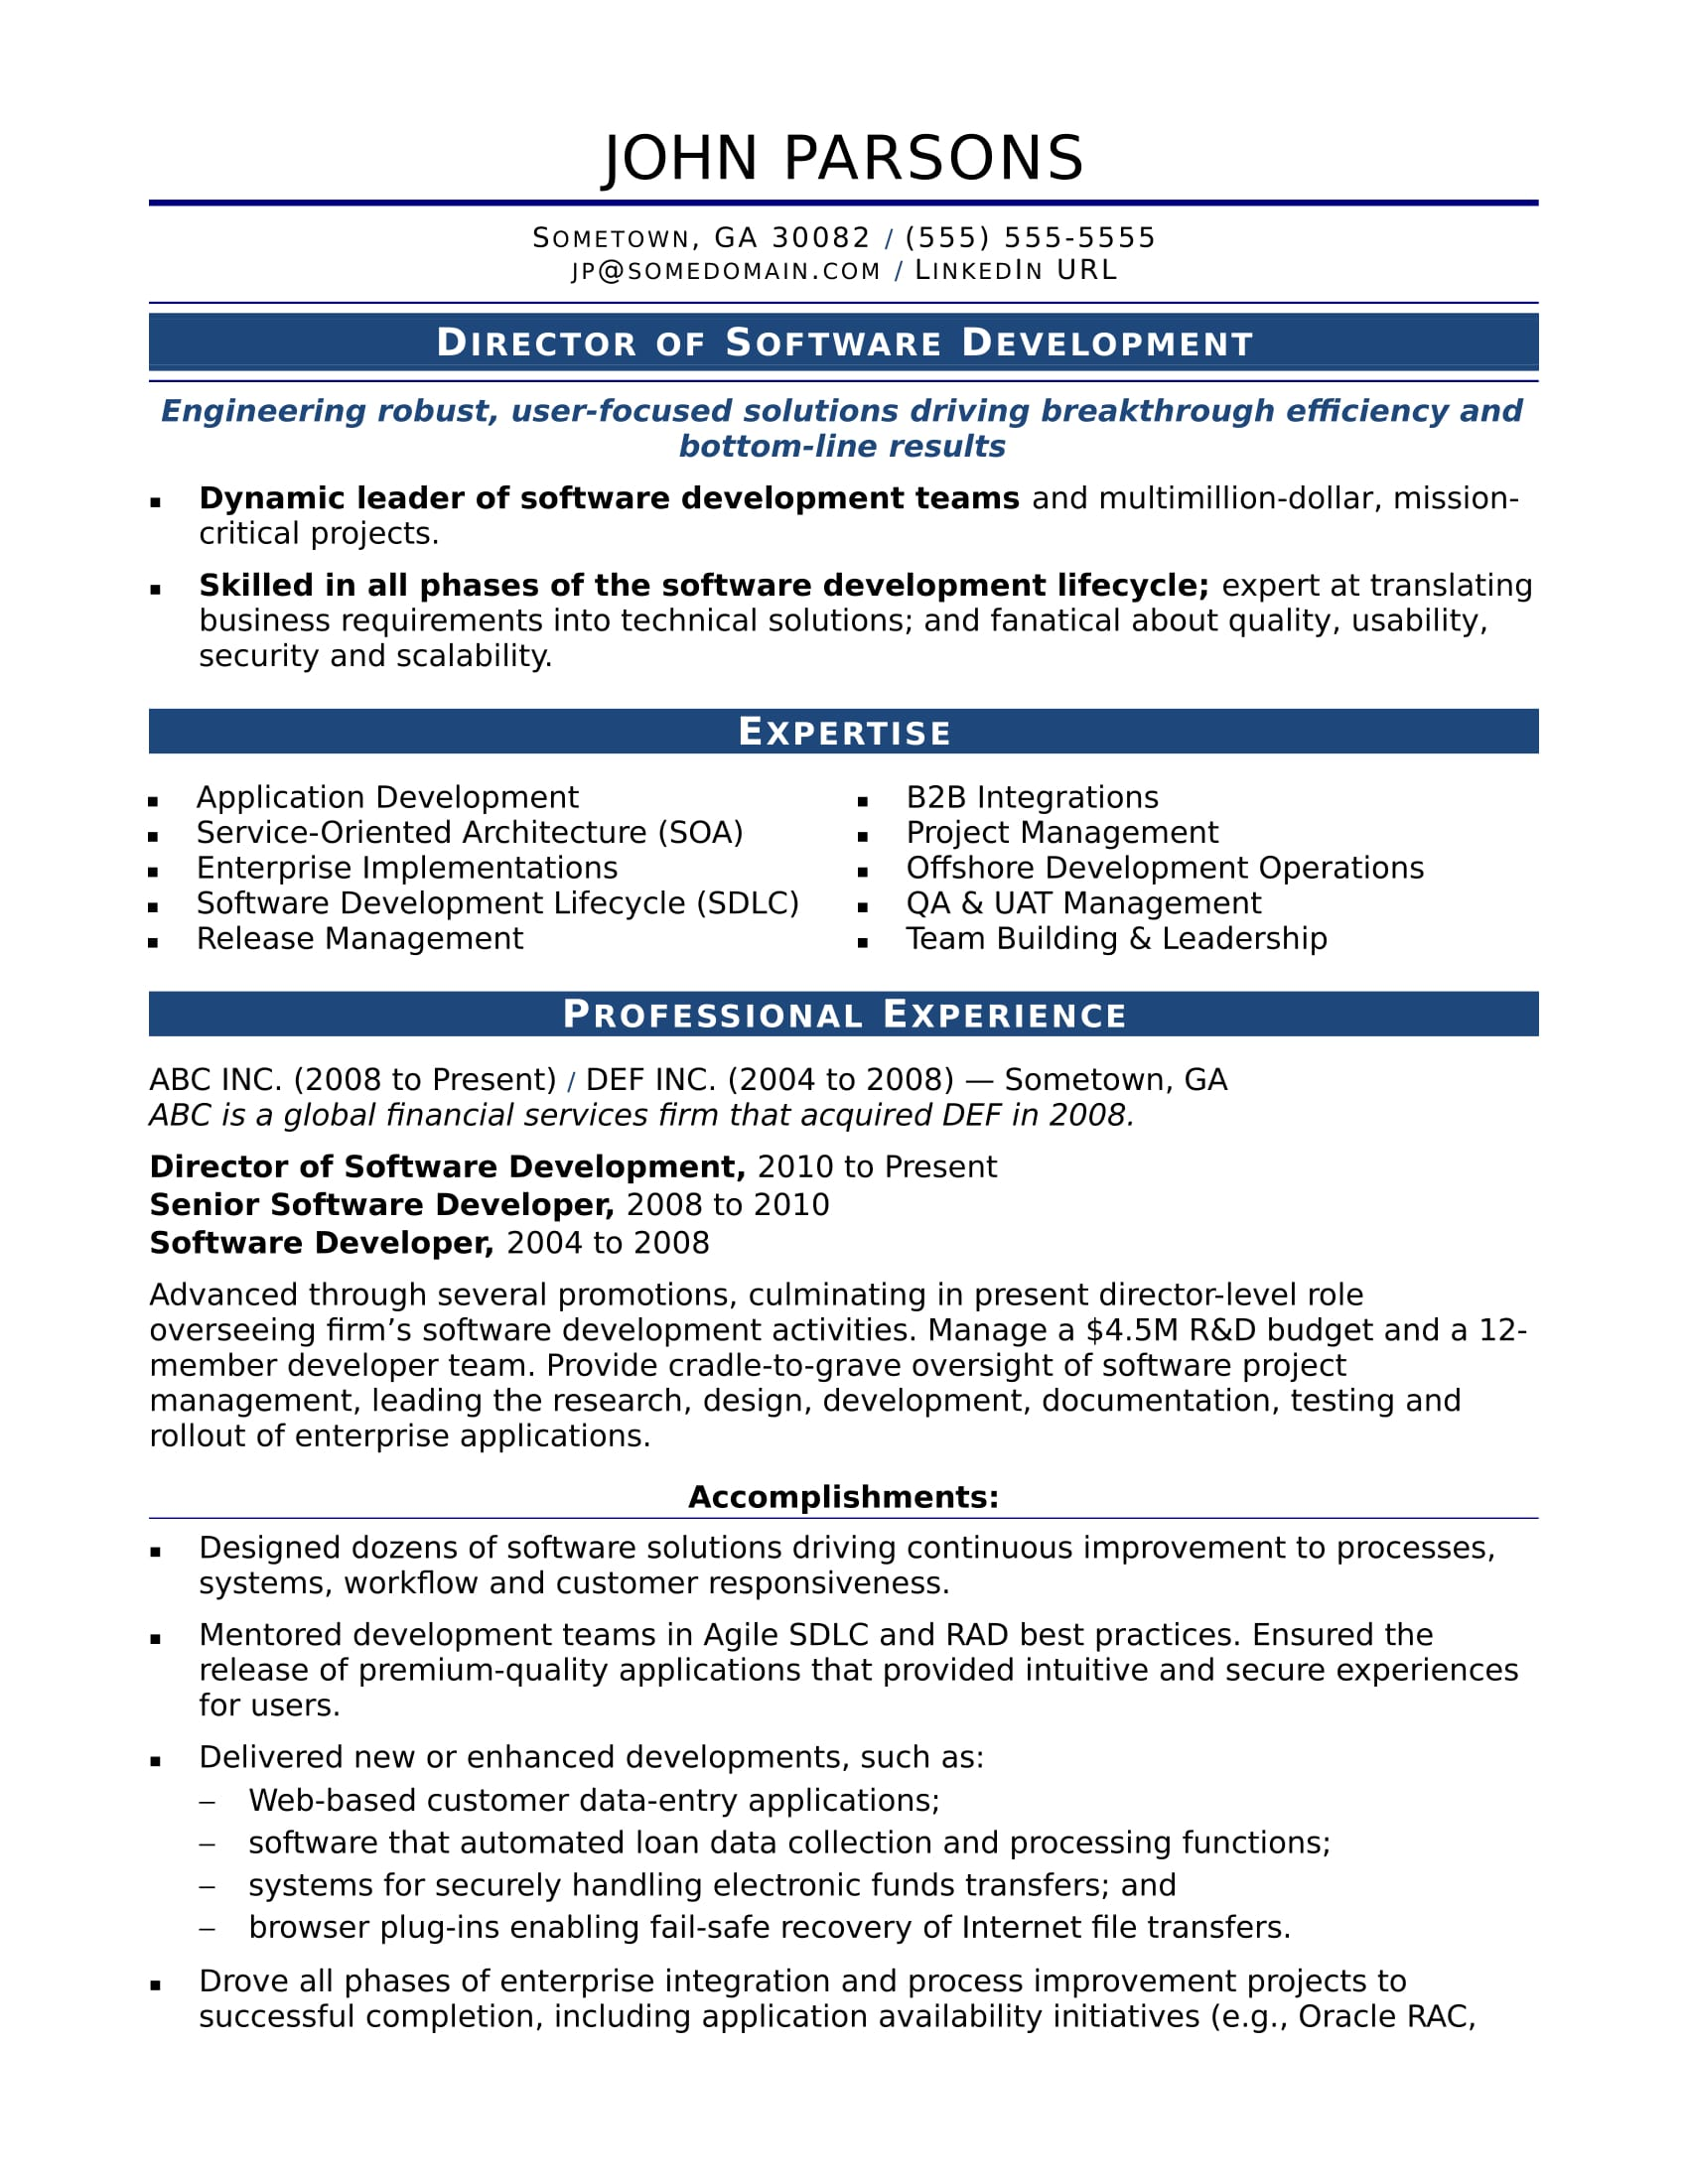 sample resume for an experienced it developer - Software Developer Sample Resume